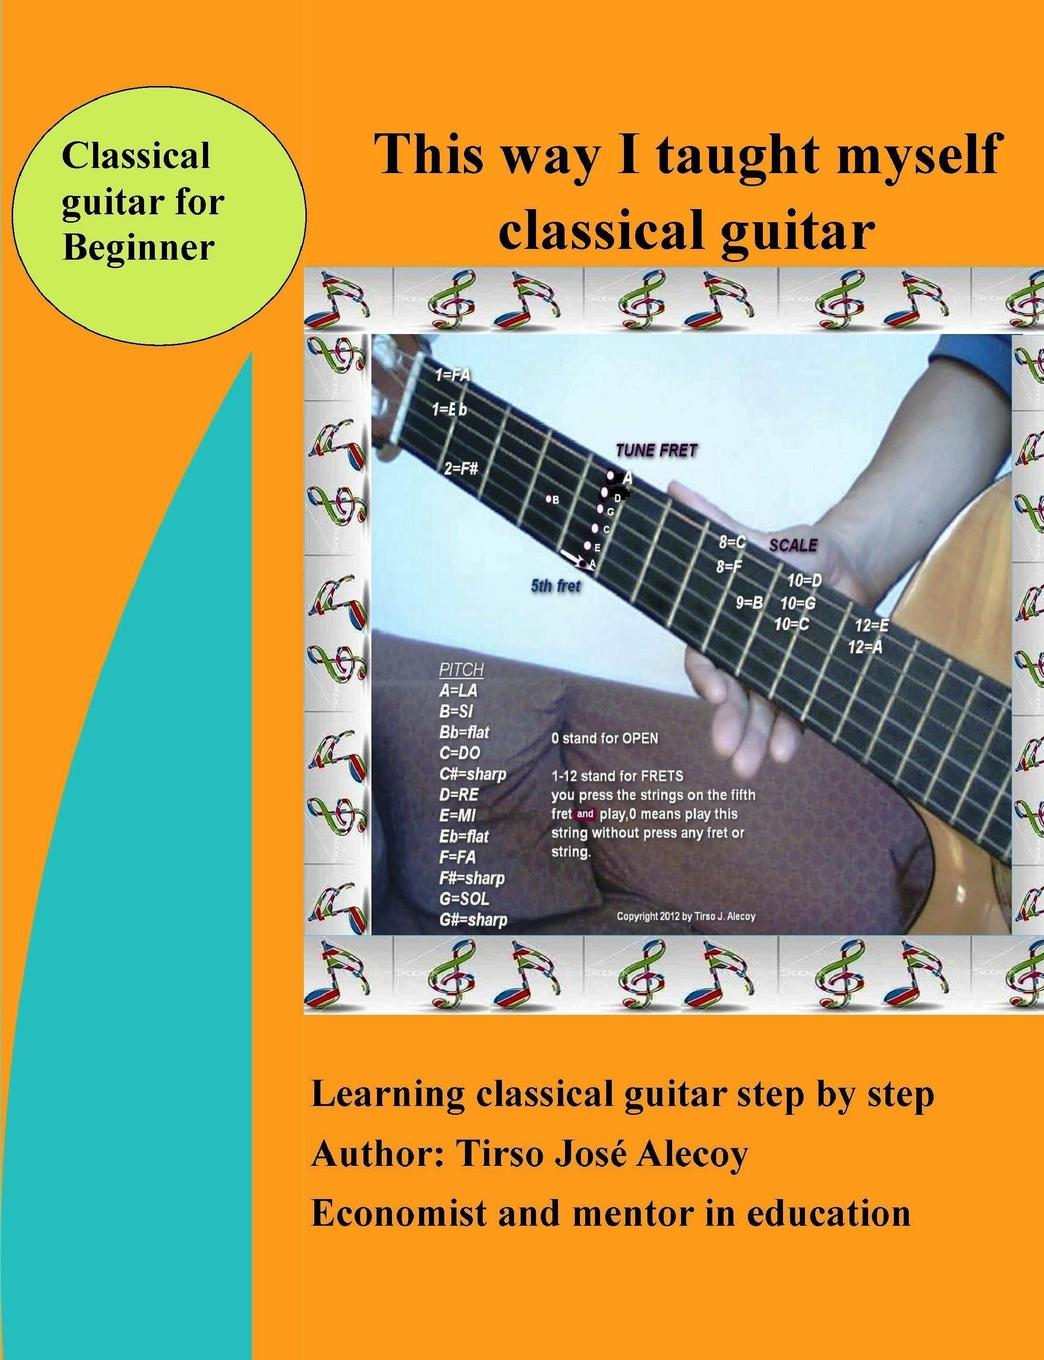 Tirso Jose Alecoy This way I taught myself classical guitar 10 pcs bone slotted bridge nut up saddle for classical guitar 52mmx6mmx9 8 5mm